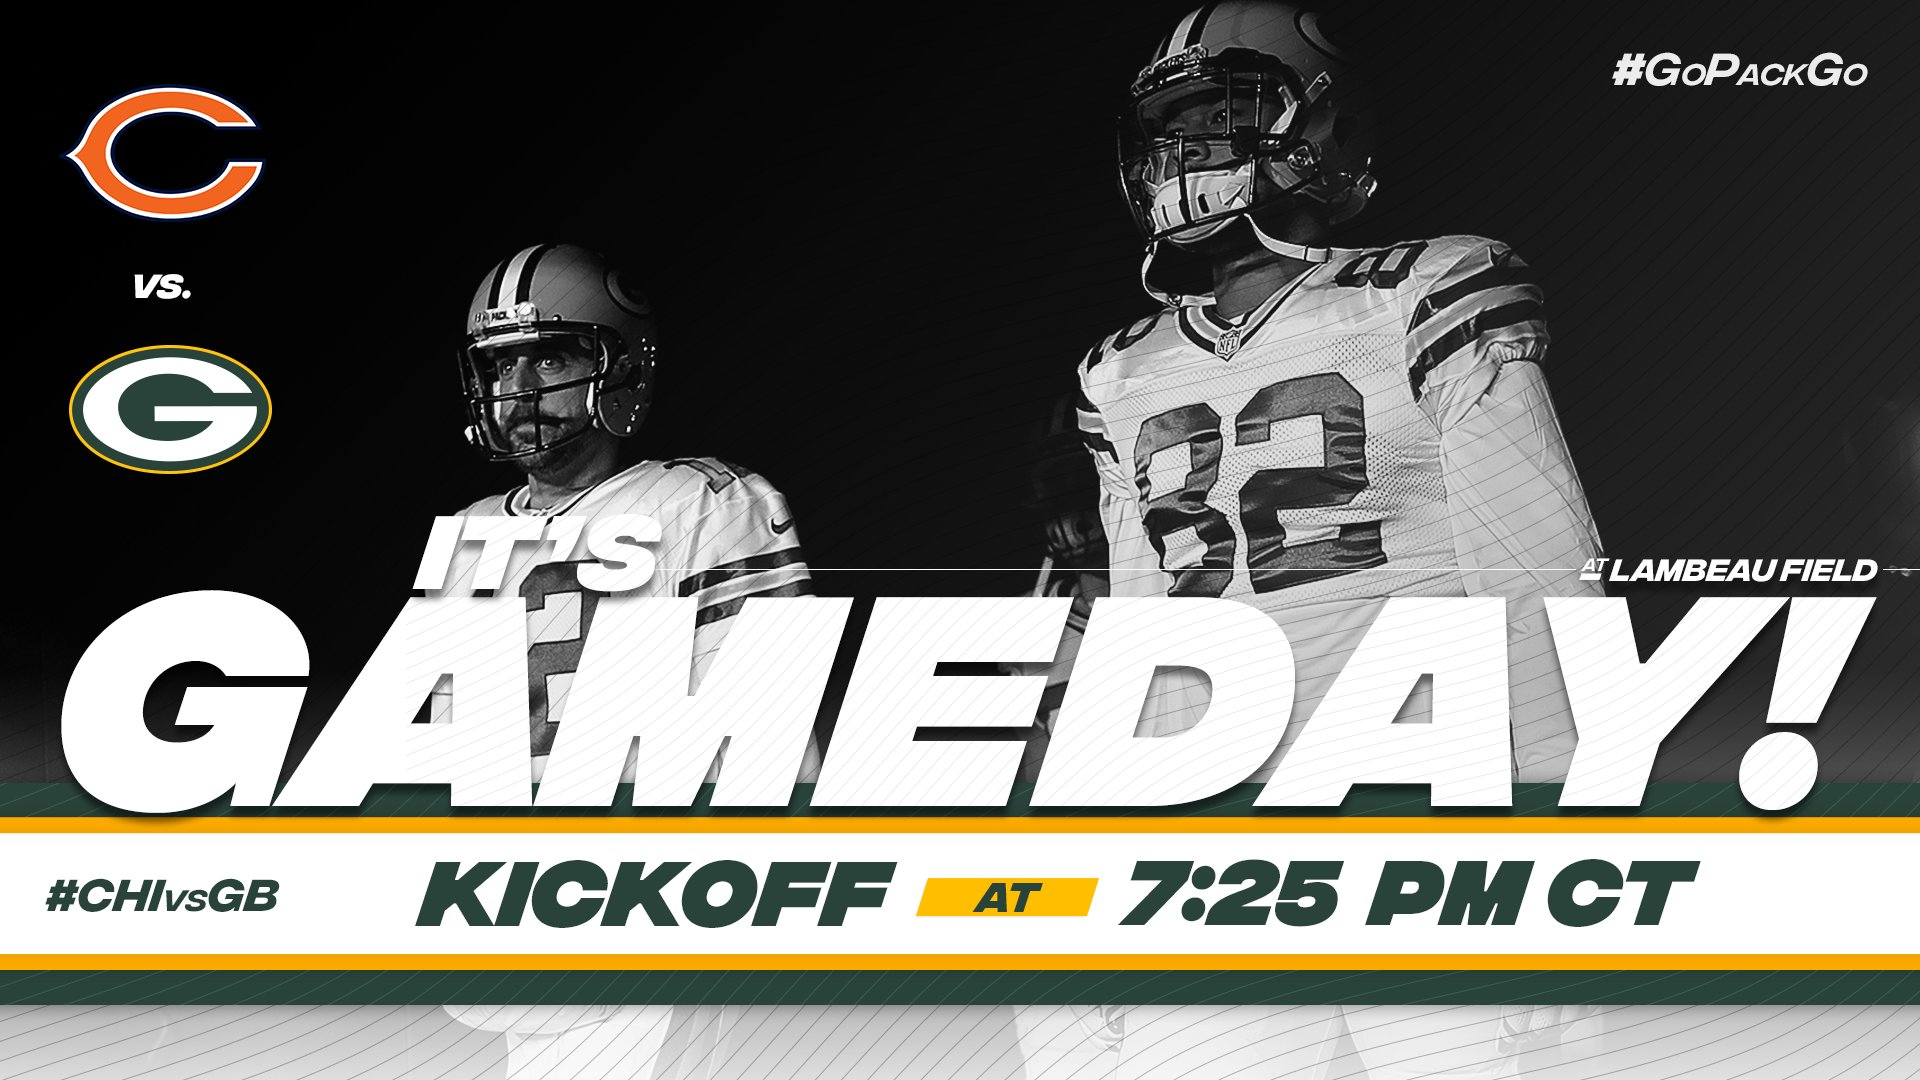 GAMEDAY! ��   The NFL's oldest rivals clash at Lambeau Field.  #CHIvsGB #GoPackGo https://t.co/kL2Zw2UnZK